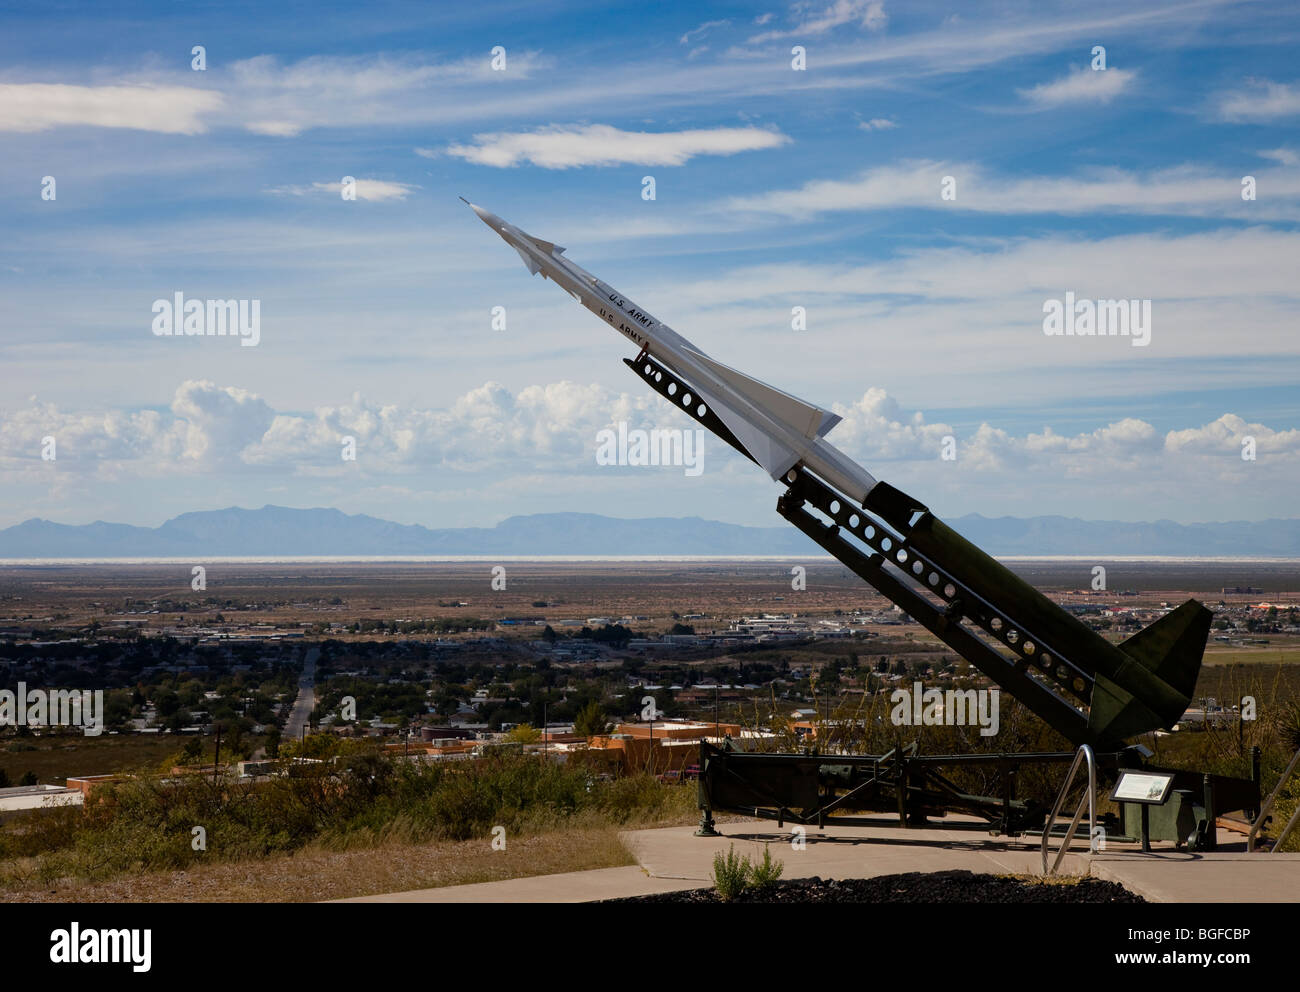 A missile on display at the Space Museum in Alamogordo, New Mexico, USA - Stock Image